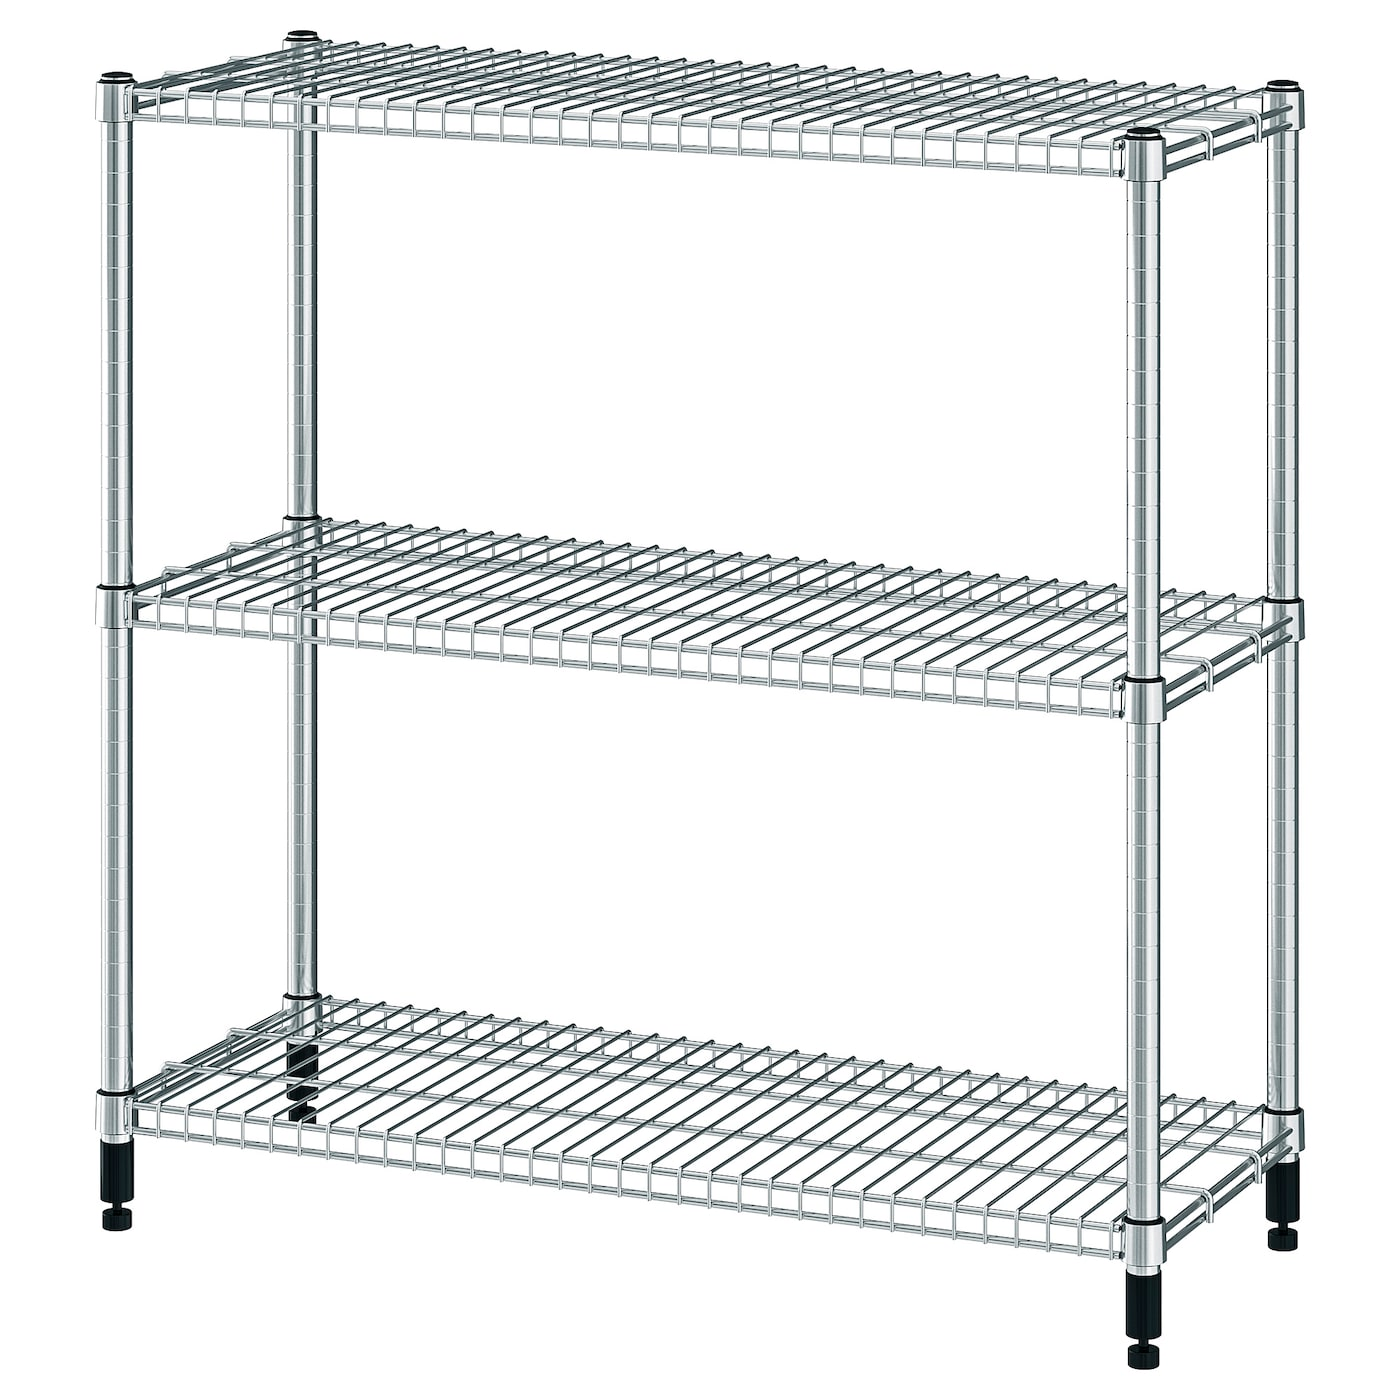 Chain Link Fence With Shelving Google Search In 2020 Wood And Metal Shelves Metal Shelves Industrial Home Design